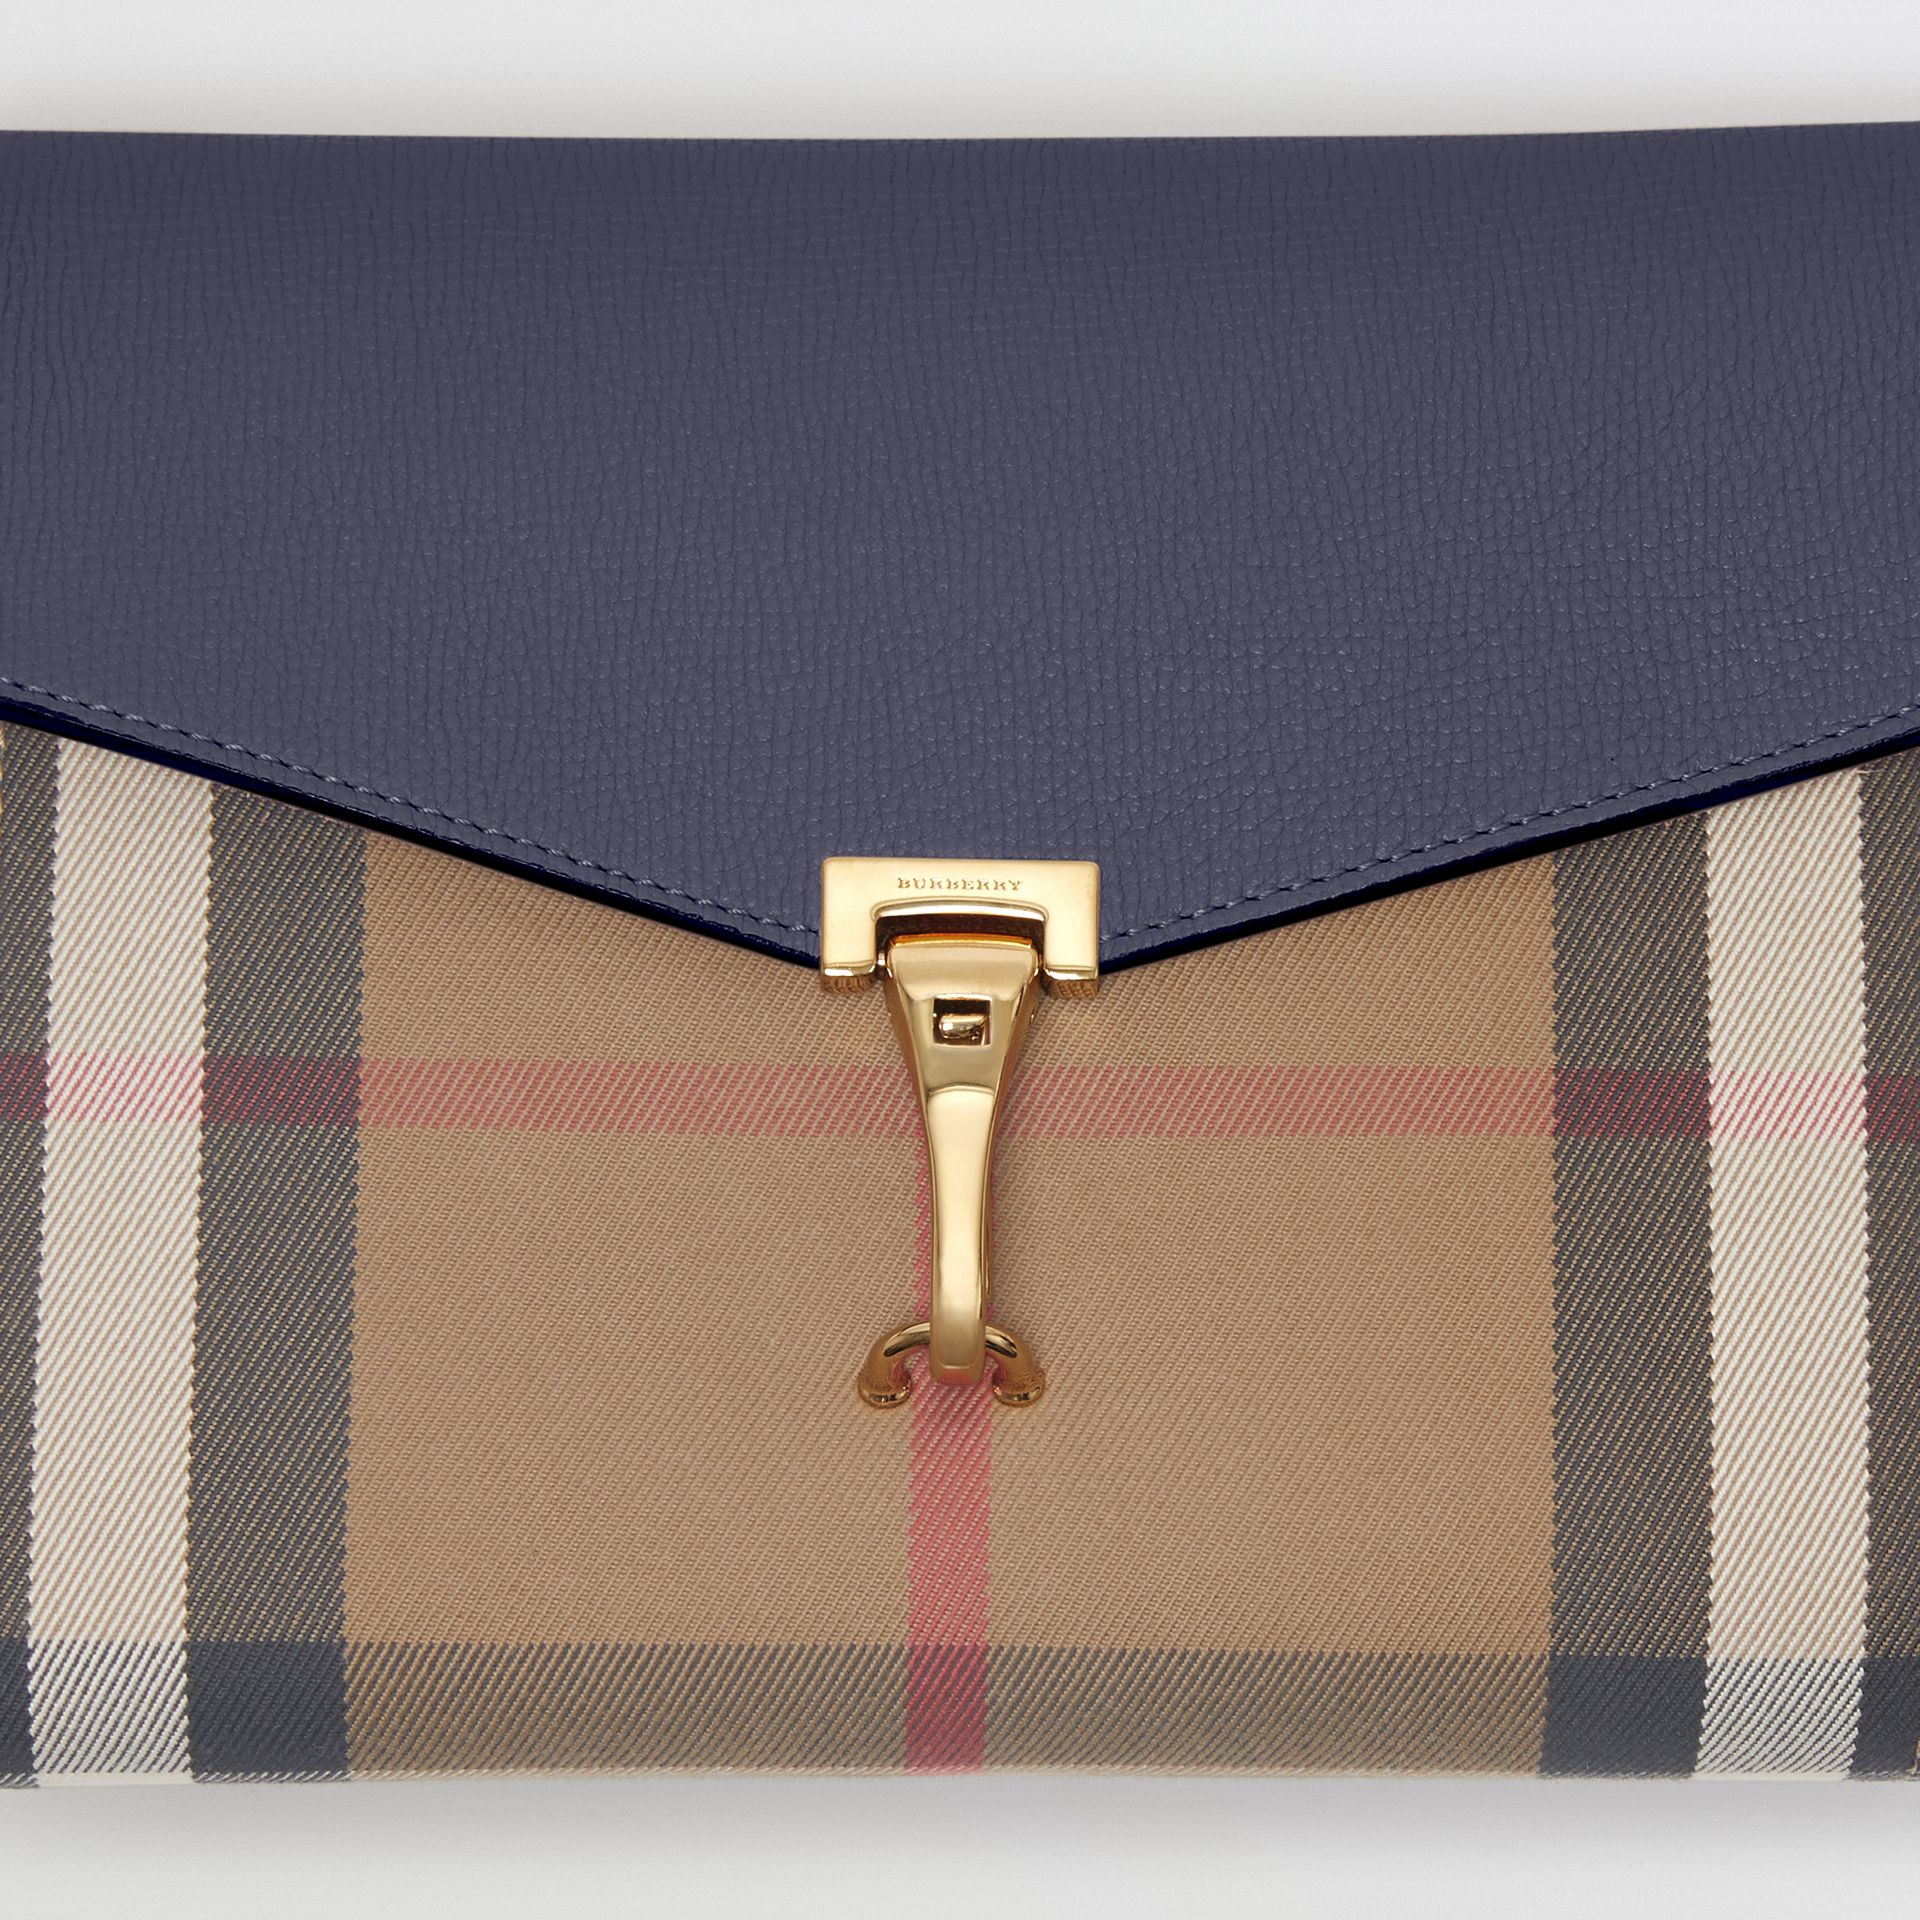 Small Leather and House Check Crossbody Bag in Ink Blue - Women | Burberry United Kingdom - gallery image 1